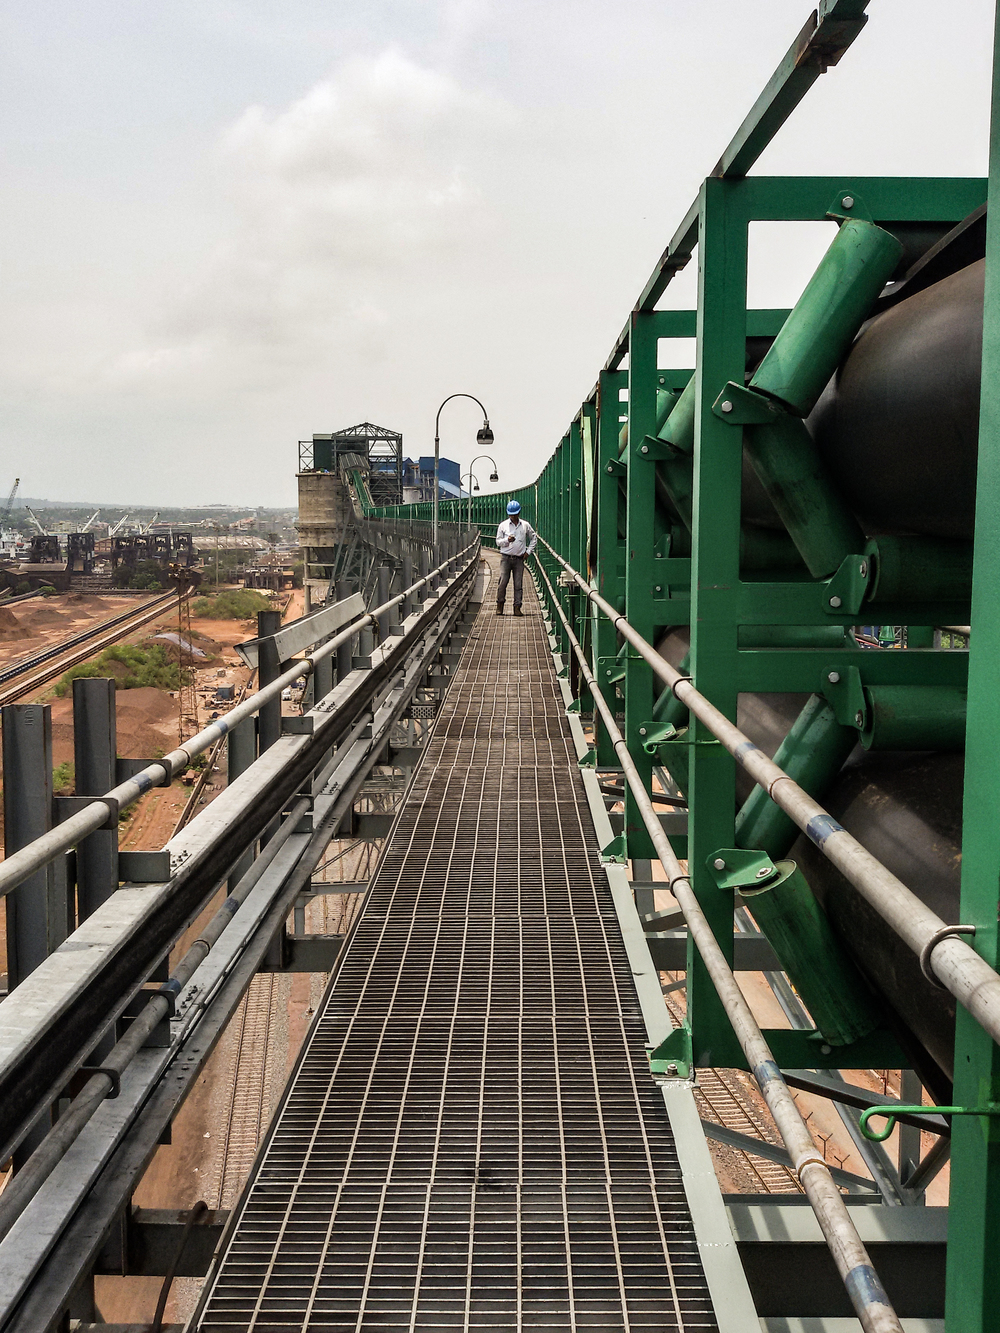 During the construction phase, a worker inspects the pipe conveyor